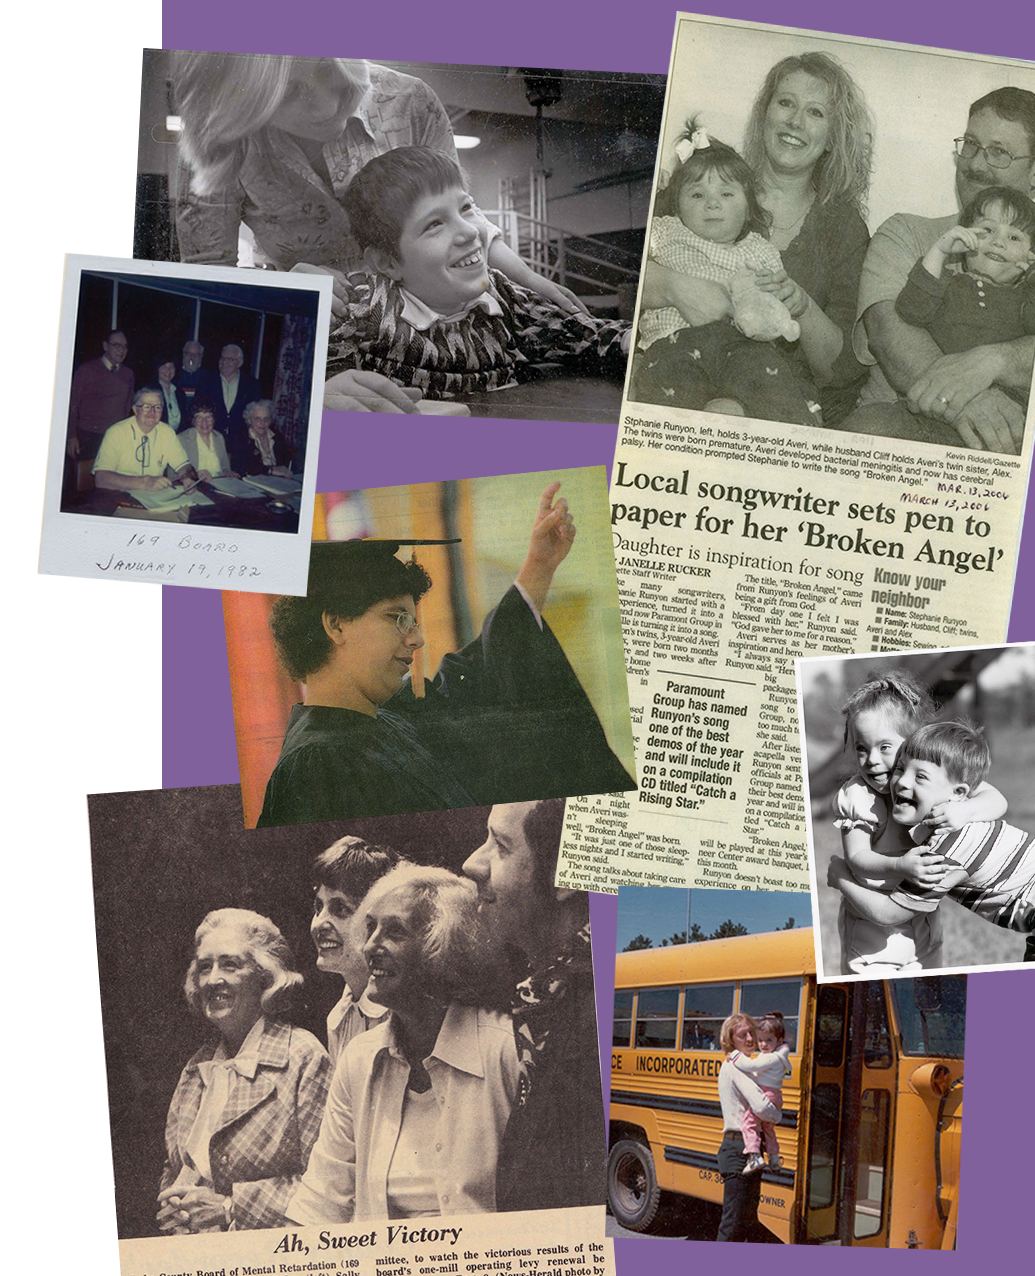 Newspaper clippings and photo collage